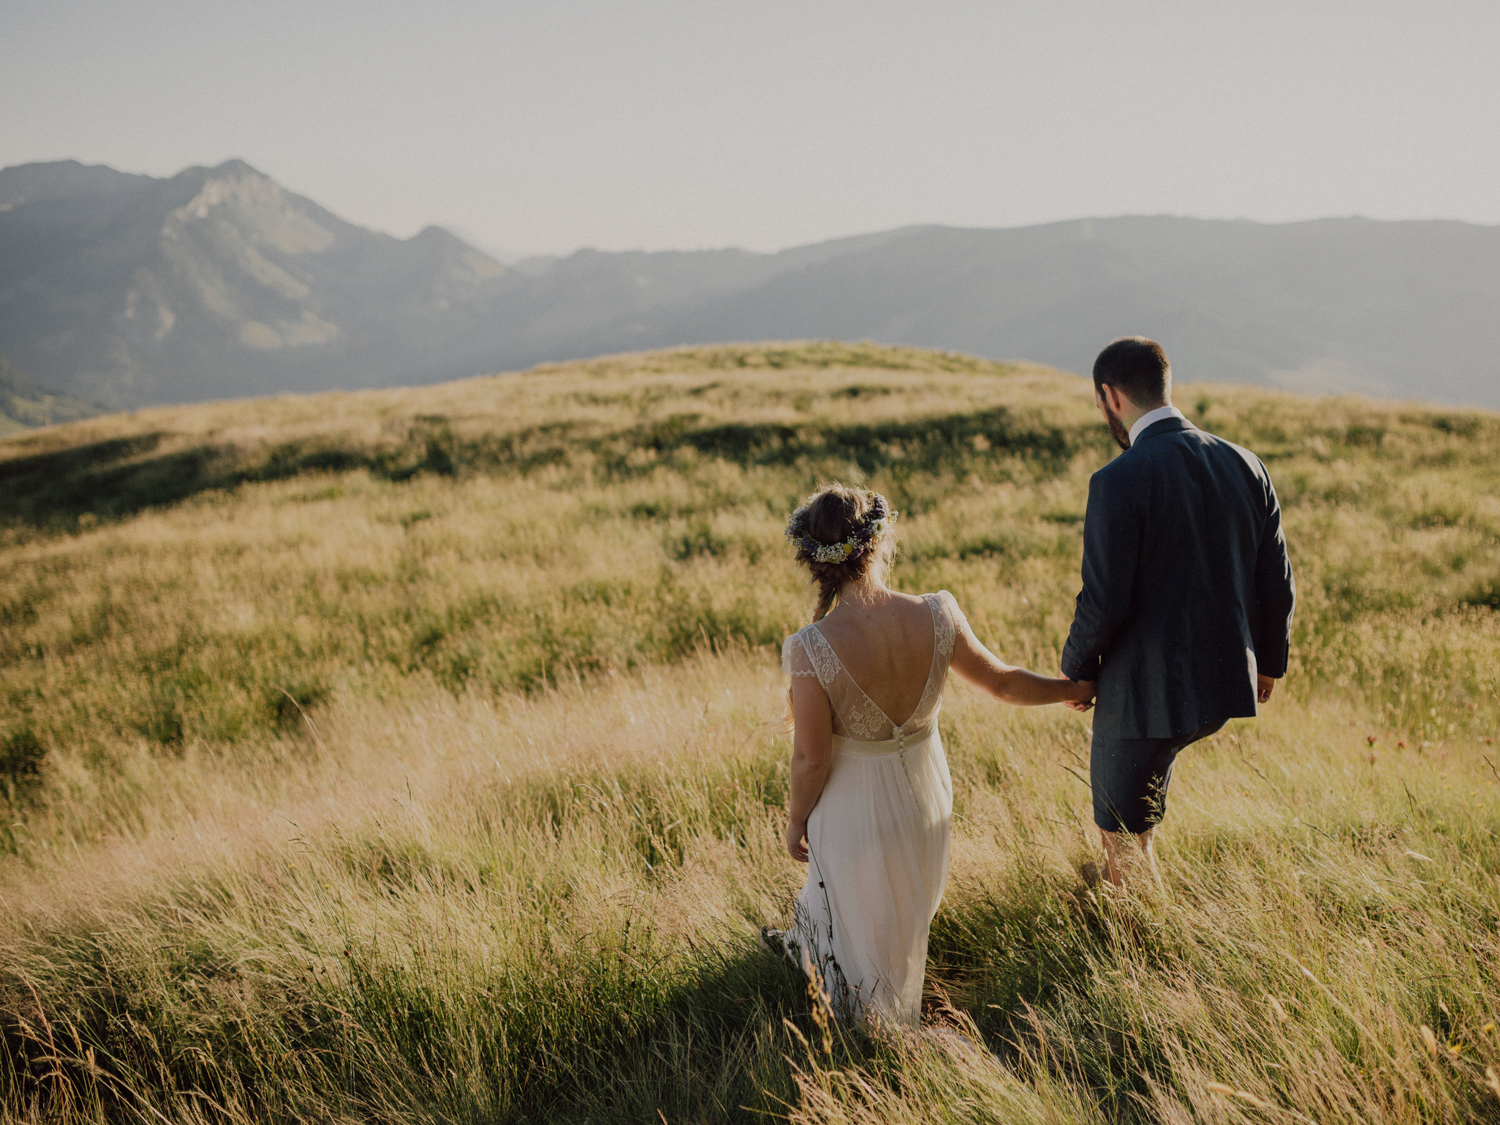 capyture-wedding-photographer-destination-elopement-switzerland-234